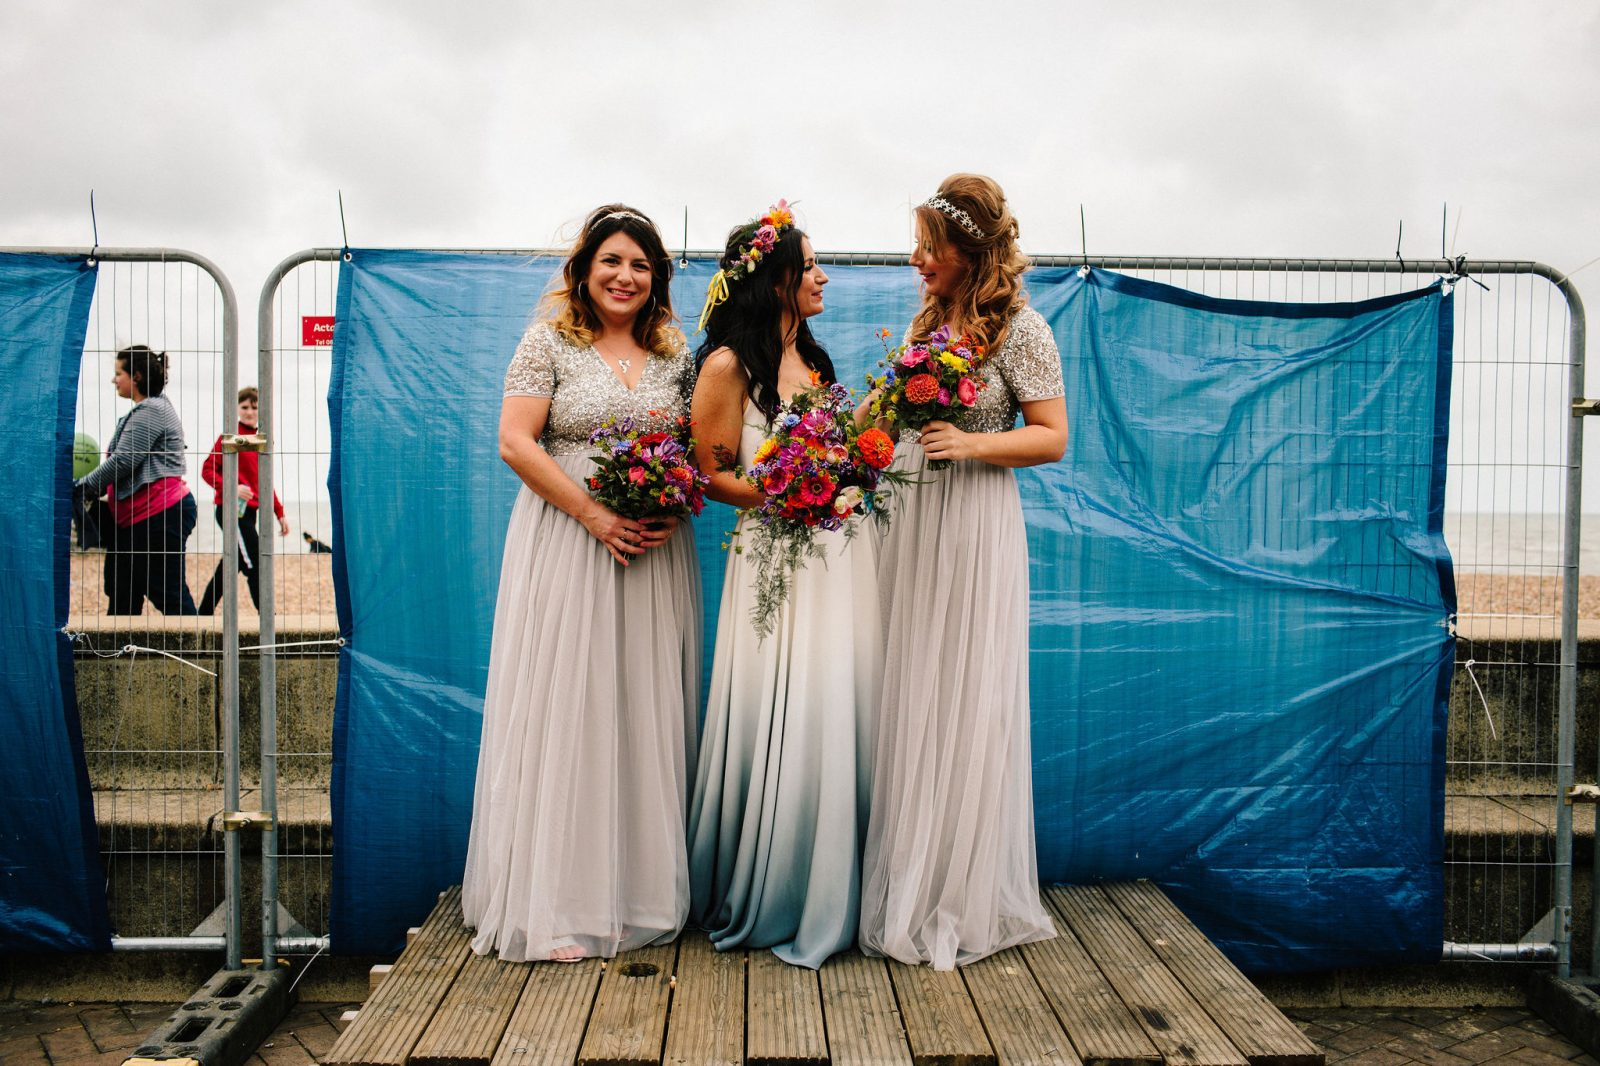 Brighton Music Hall wedding bride ASOS bridesmaids dresses